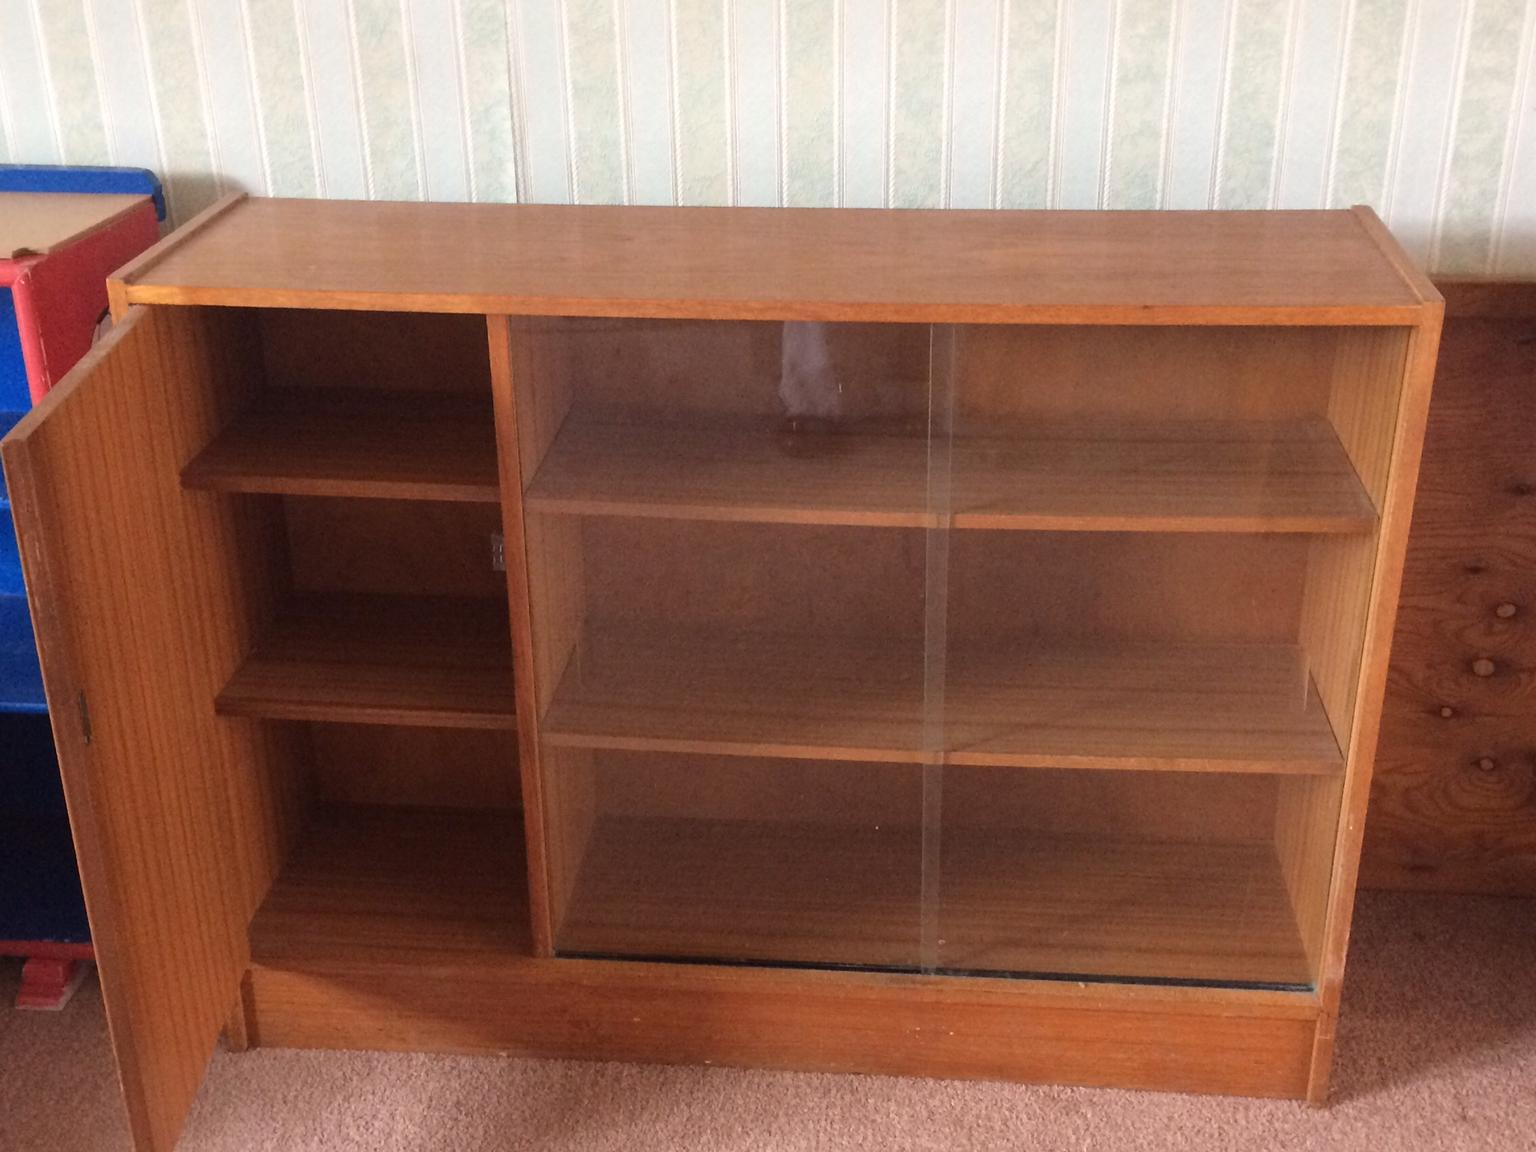 Wooden Glass Fronted Shelving Unit In Np22 Tredegar For 15 00 For Sale Shpock